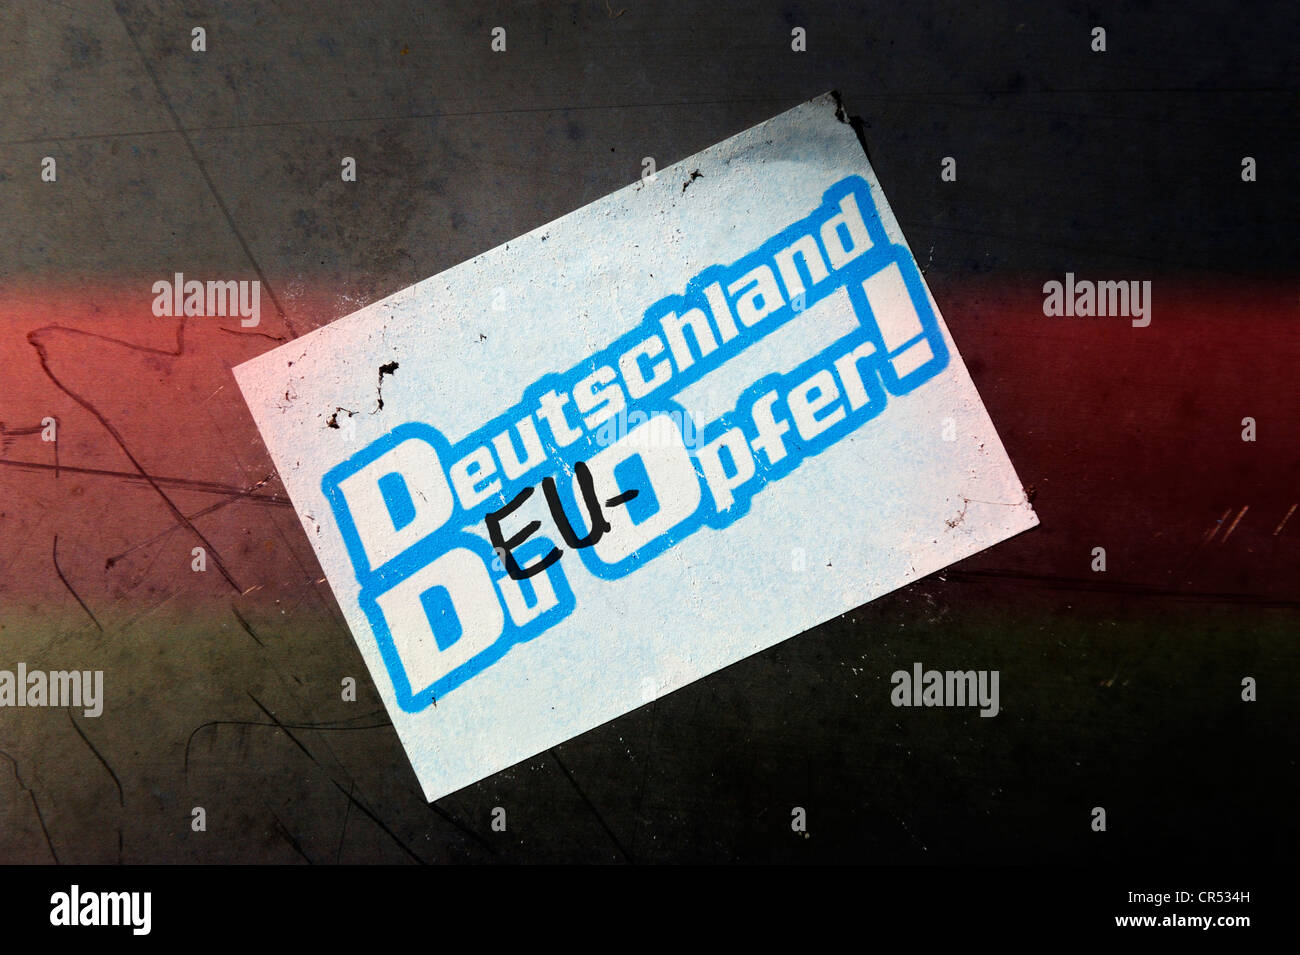 Sticker on a wall, 'Deutschland, Du EU-Opfer!', German for 'Germany, you are a EU victim' - Stock Image